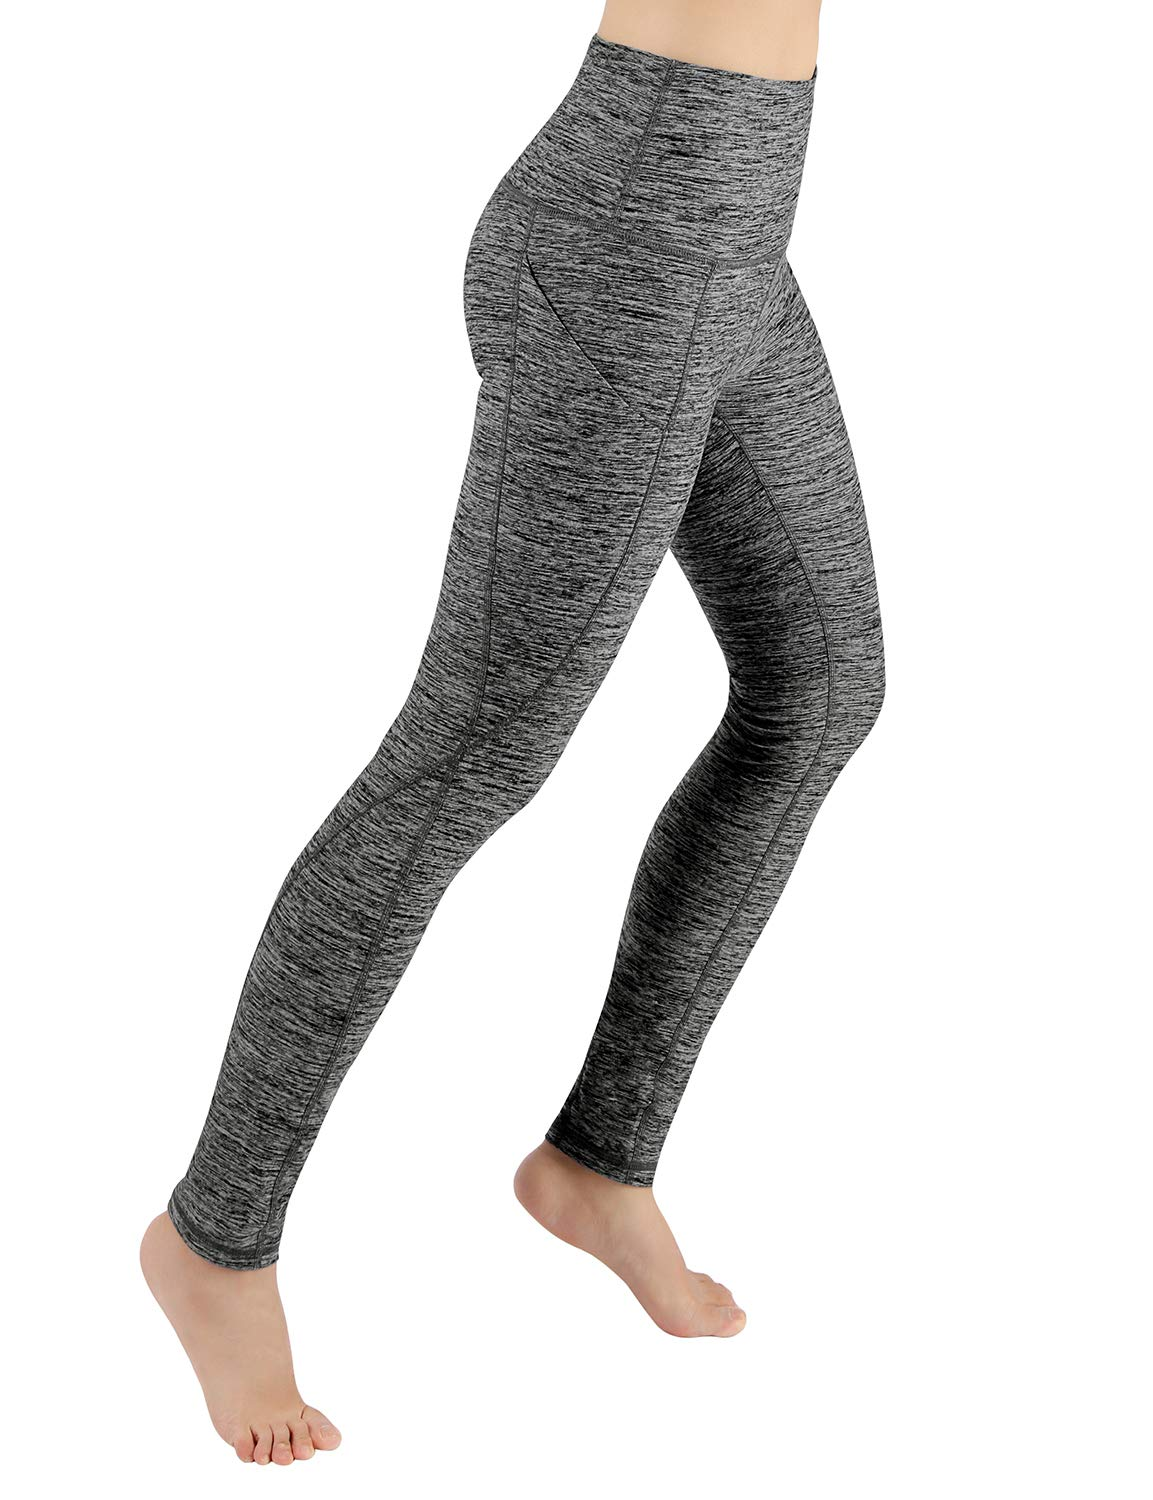 ODODOS Women's High Waist Yoga Pants with Pockets,Tummy Control,Workout Pants Running 4 Way Stretch Yoga Leggings with Pockets,CharcoalHeather,Large by ODODOS